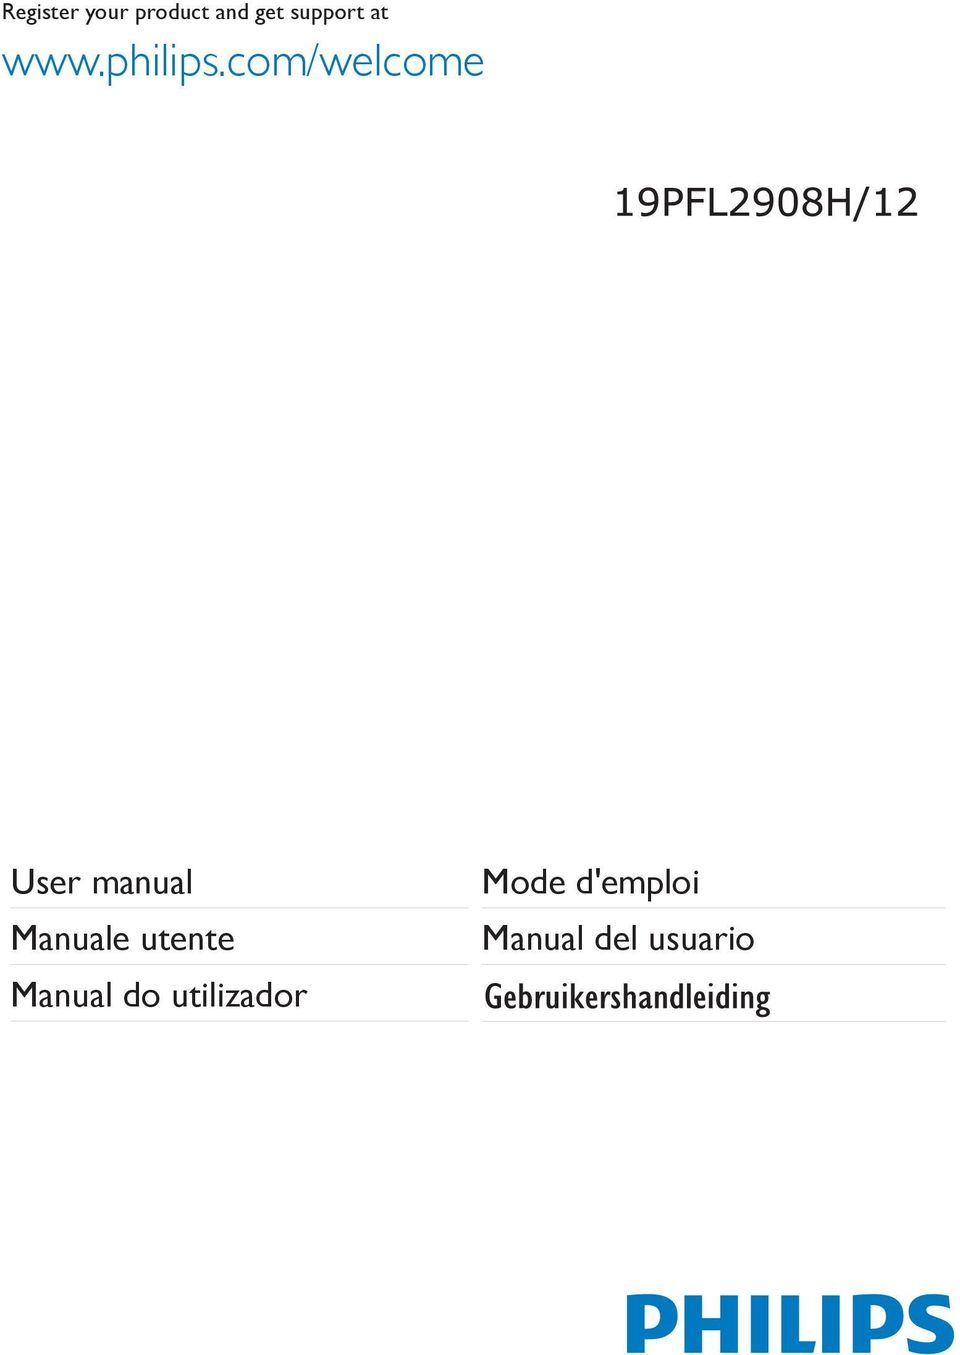 com/welcome User manual Manuale